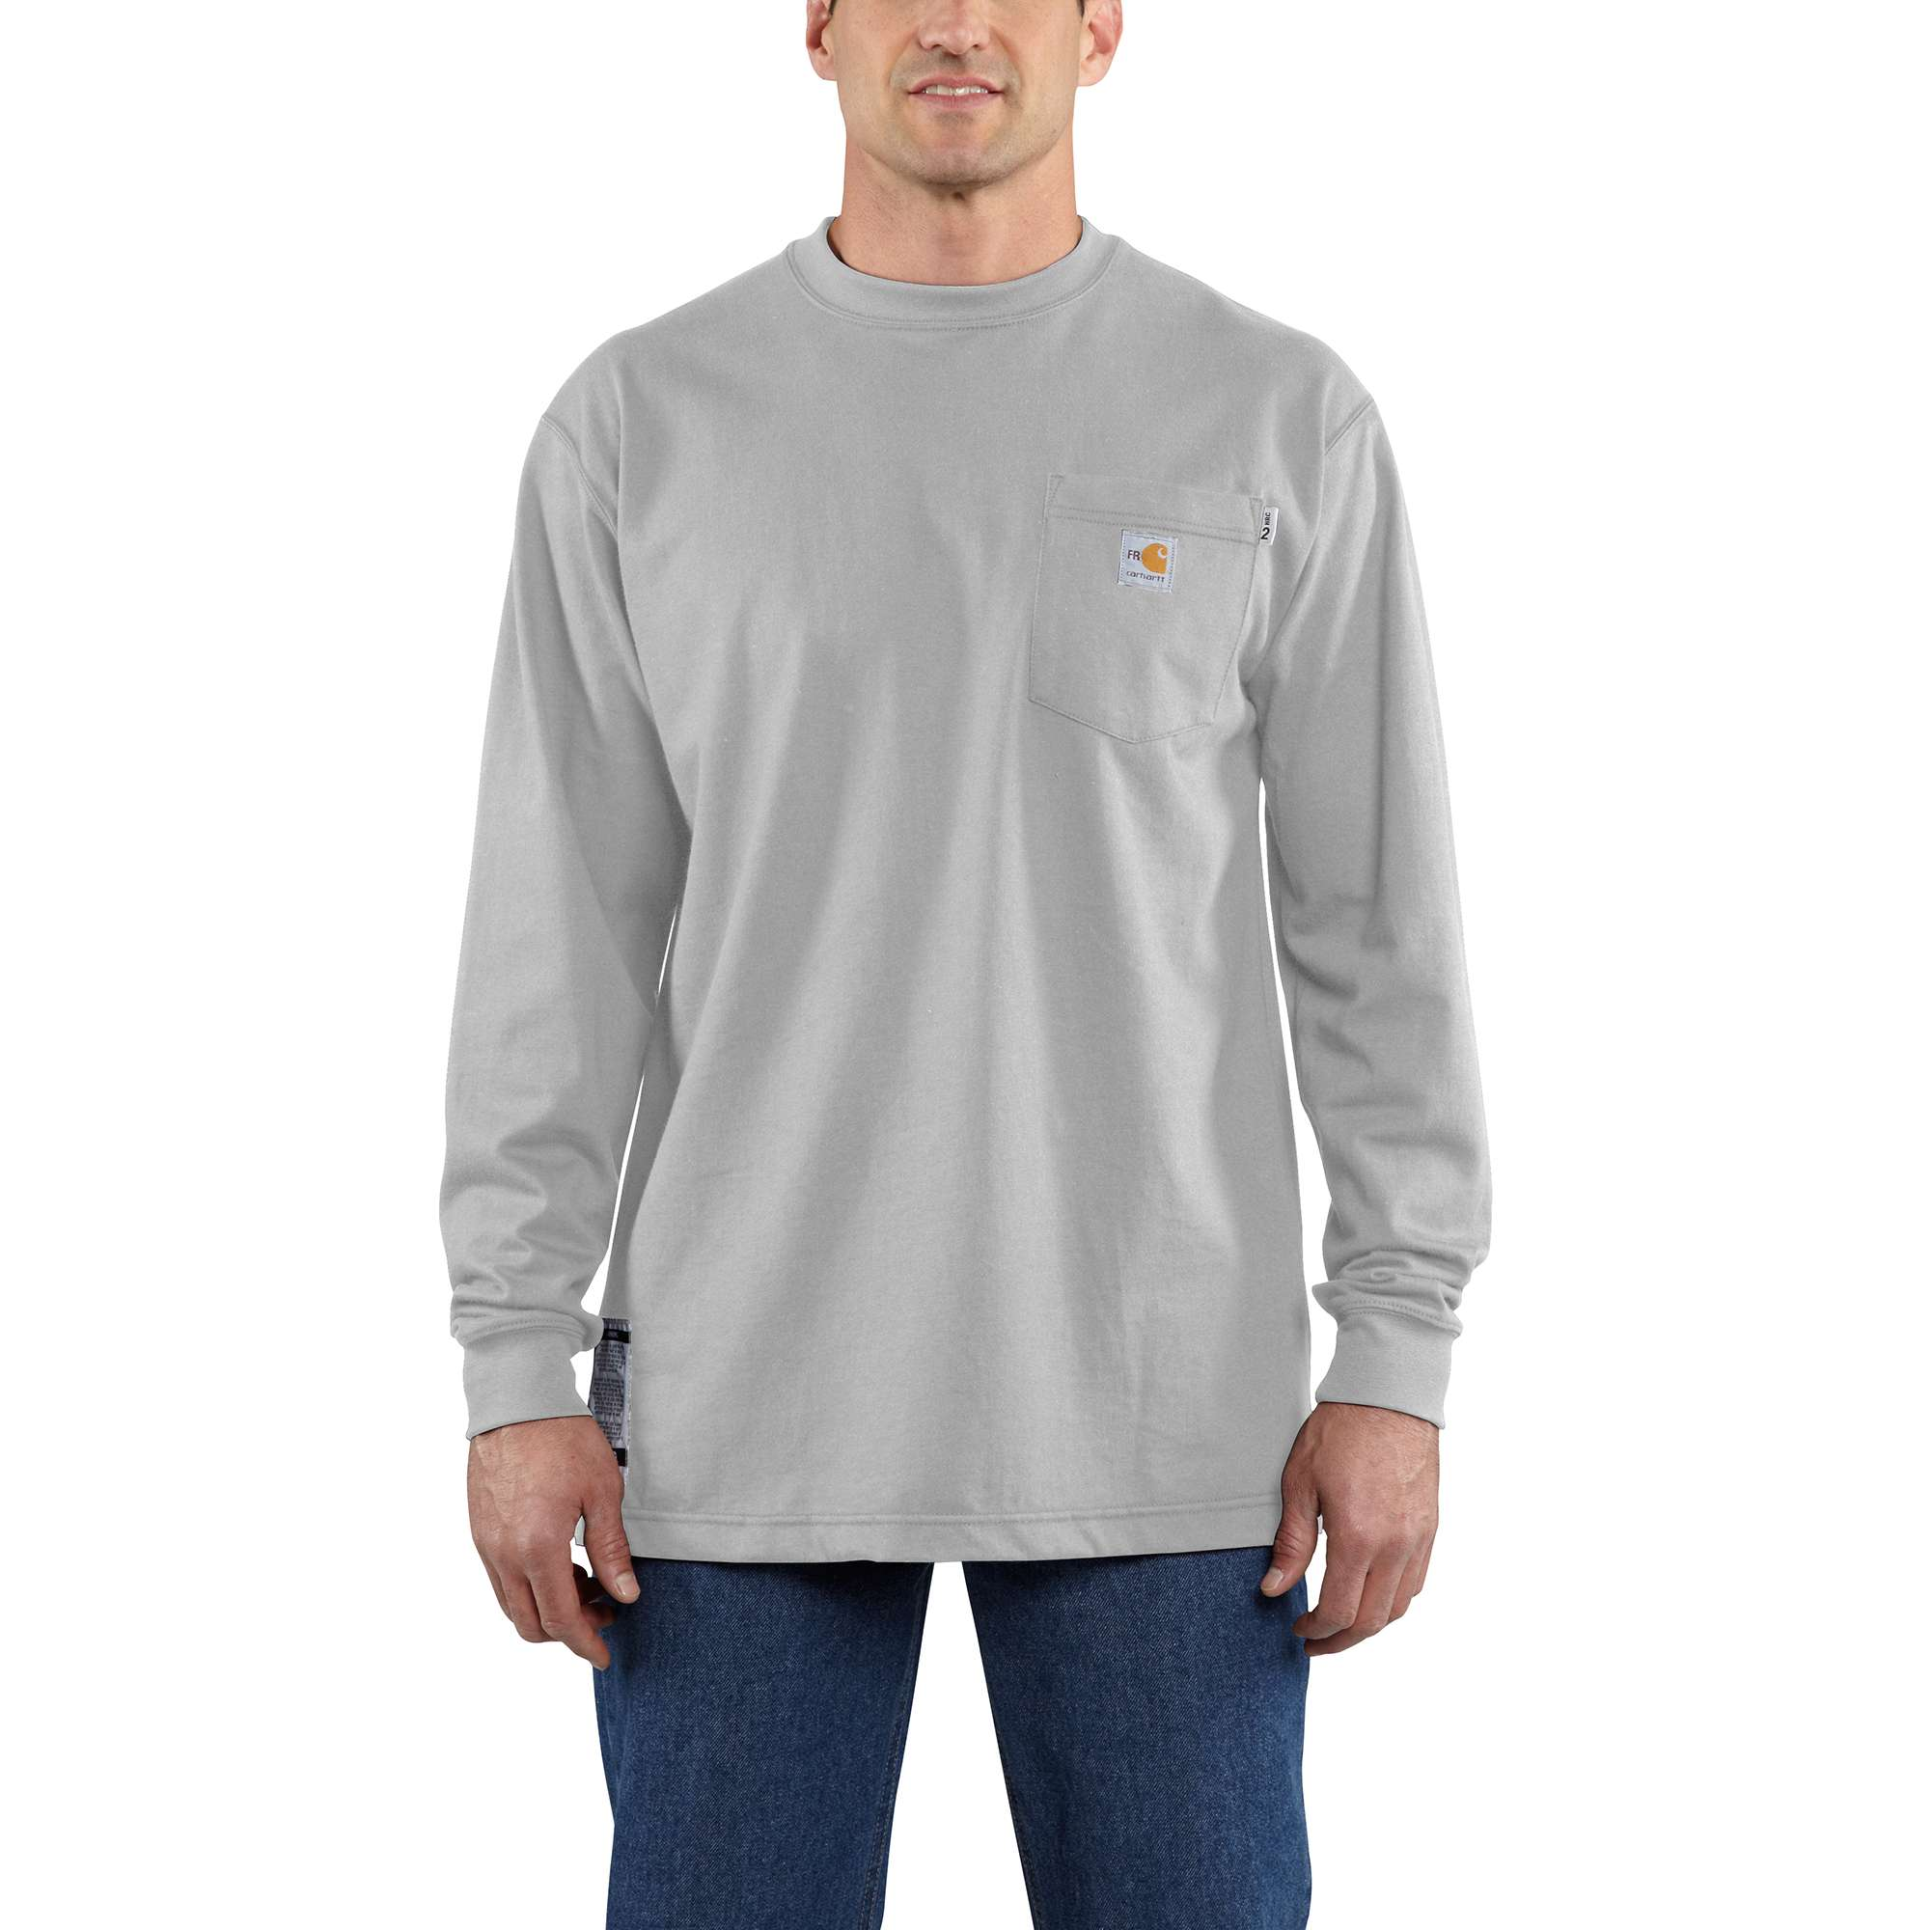 Carhartt Flame-Resistant Carhartt Force Cotton Long-Sleeve T-Shirt